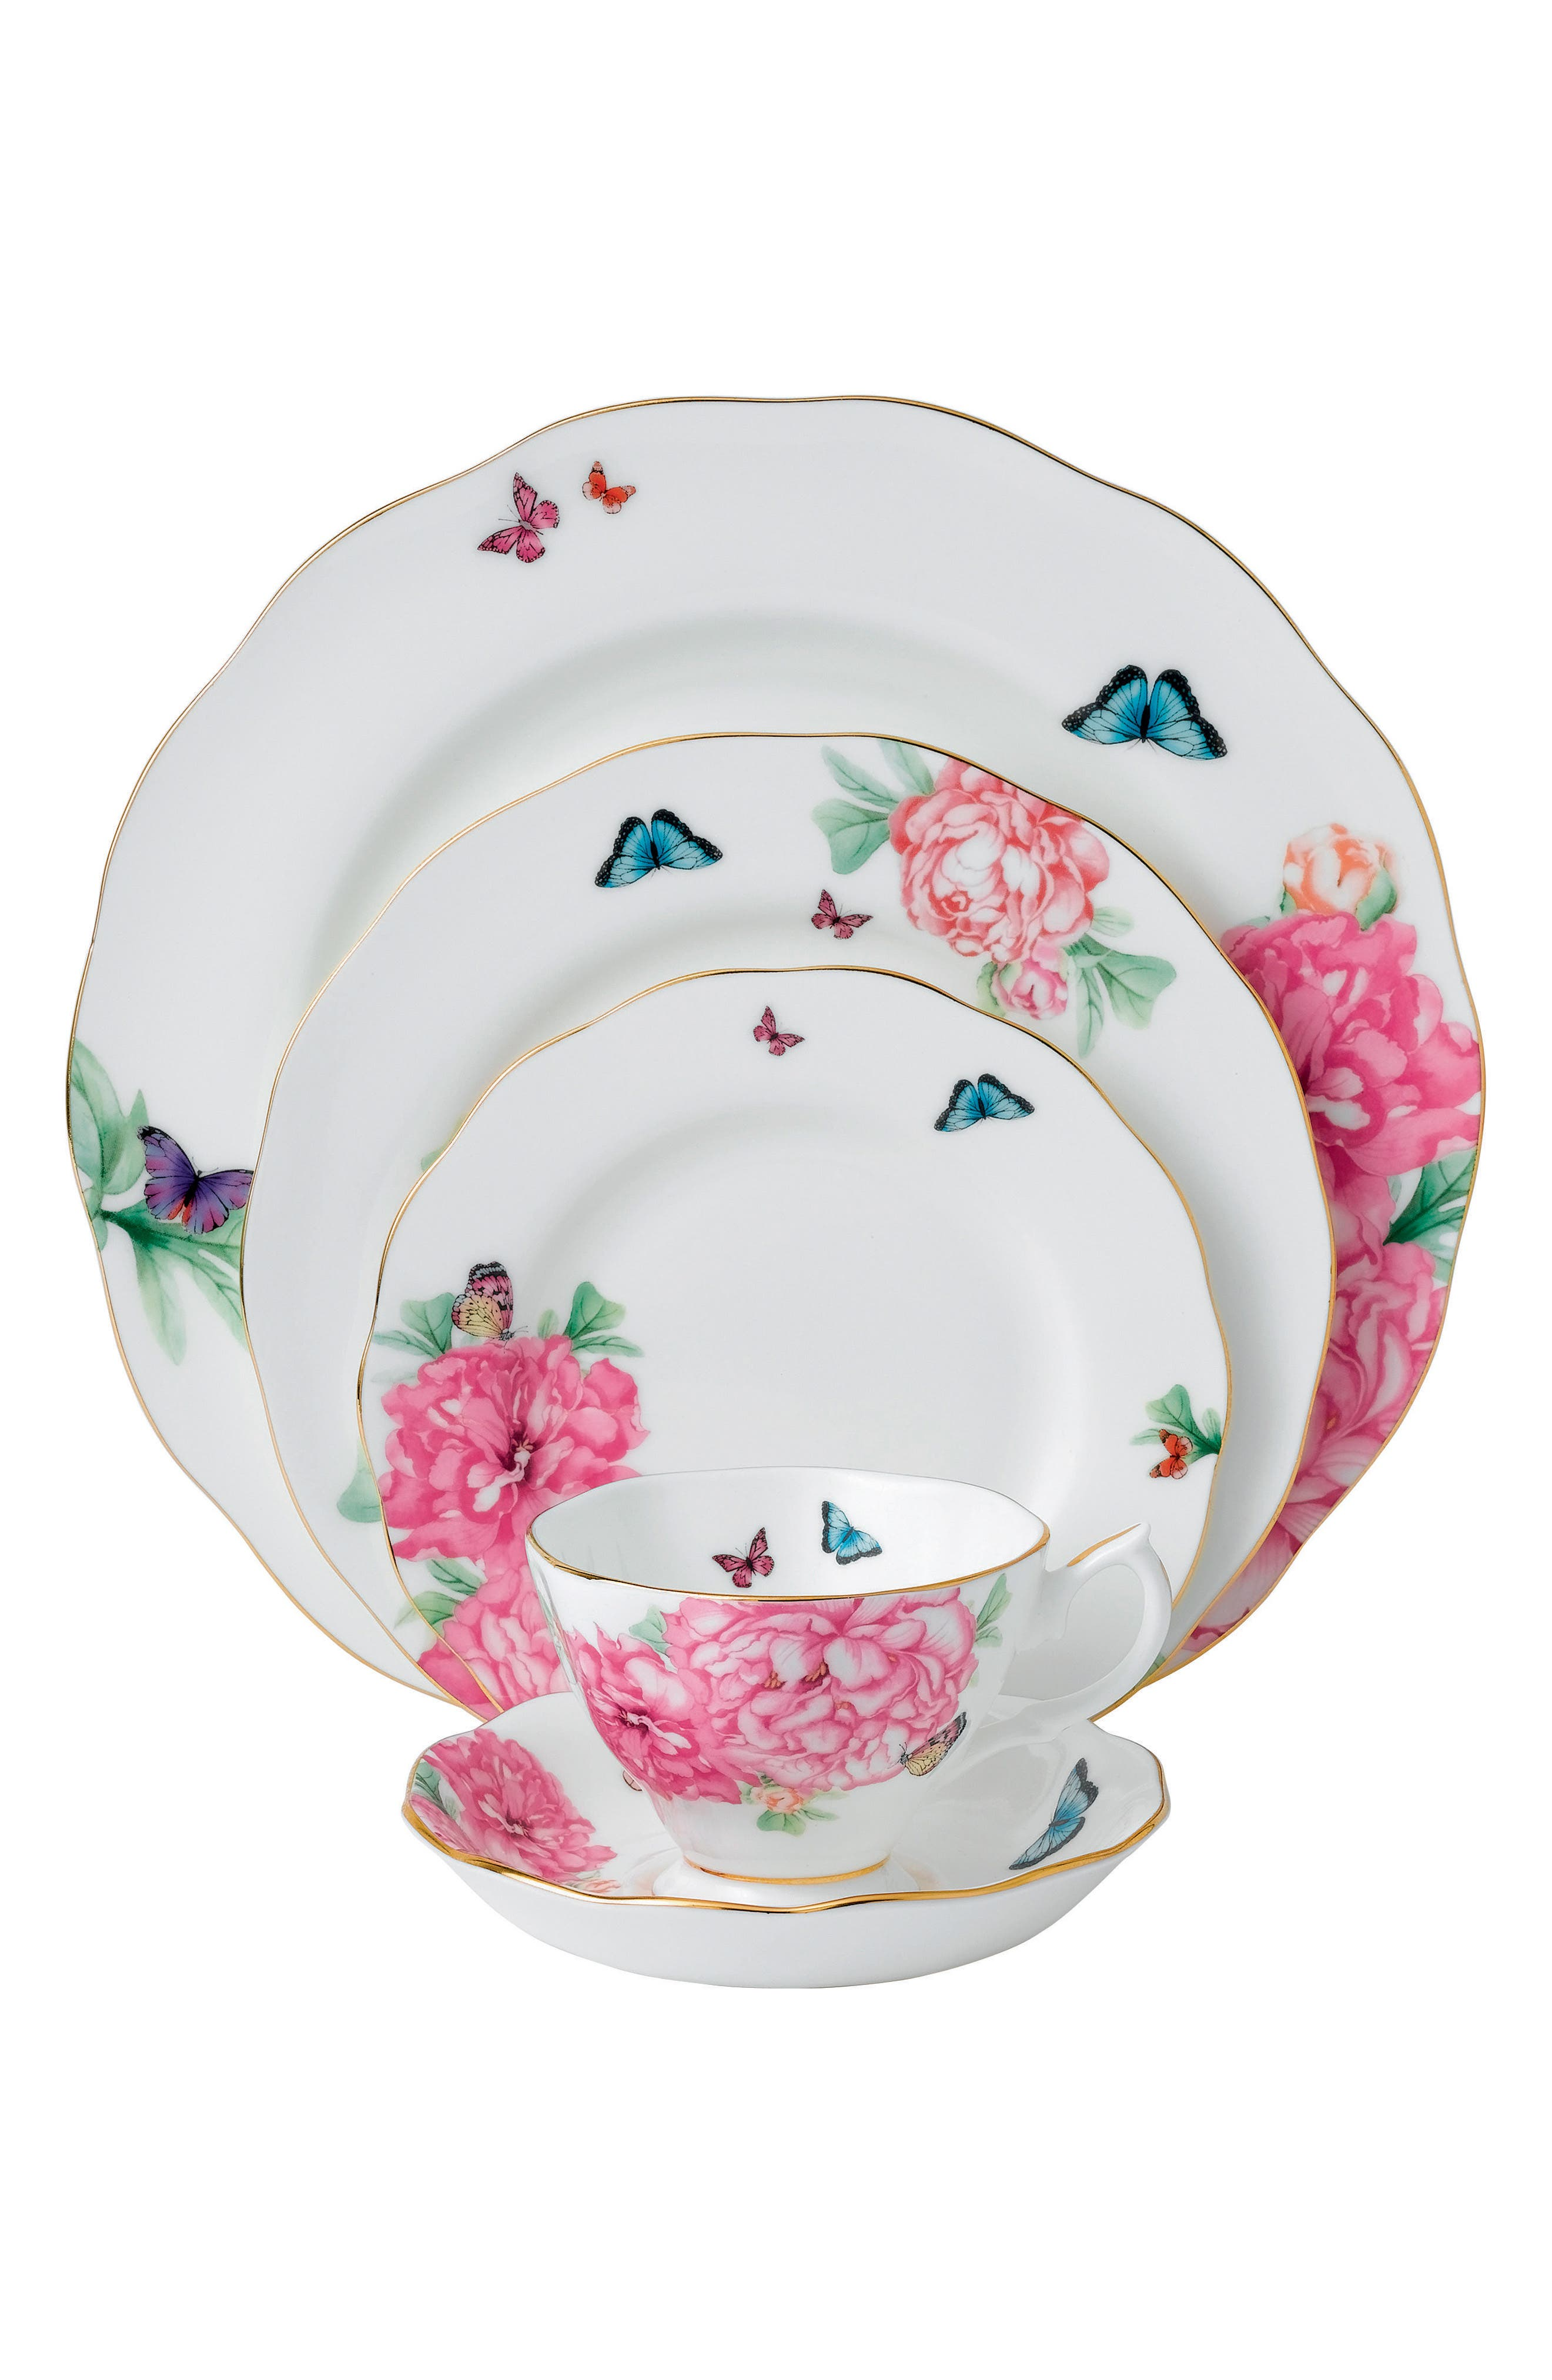 Alternate Image 1 Selected - Miranda Kerr for Royal Albert Friendship 5-Piece Place Setting